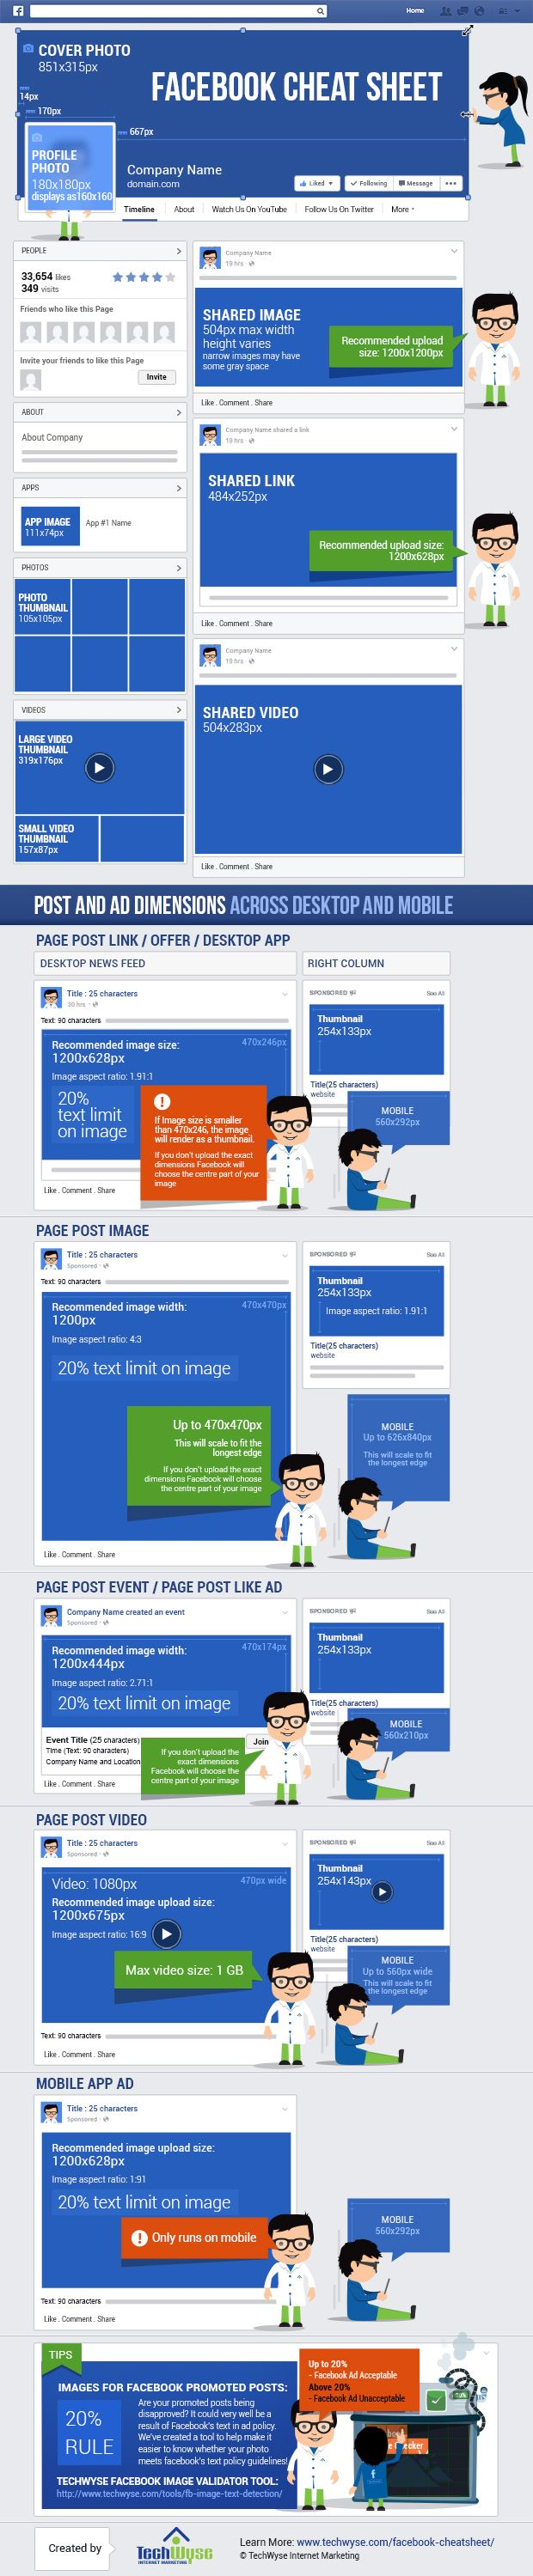 INFOGRAPHIC: Cheat Sheet for Facebook Page Admins – AllFacebook Published by Maan Ali